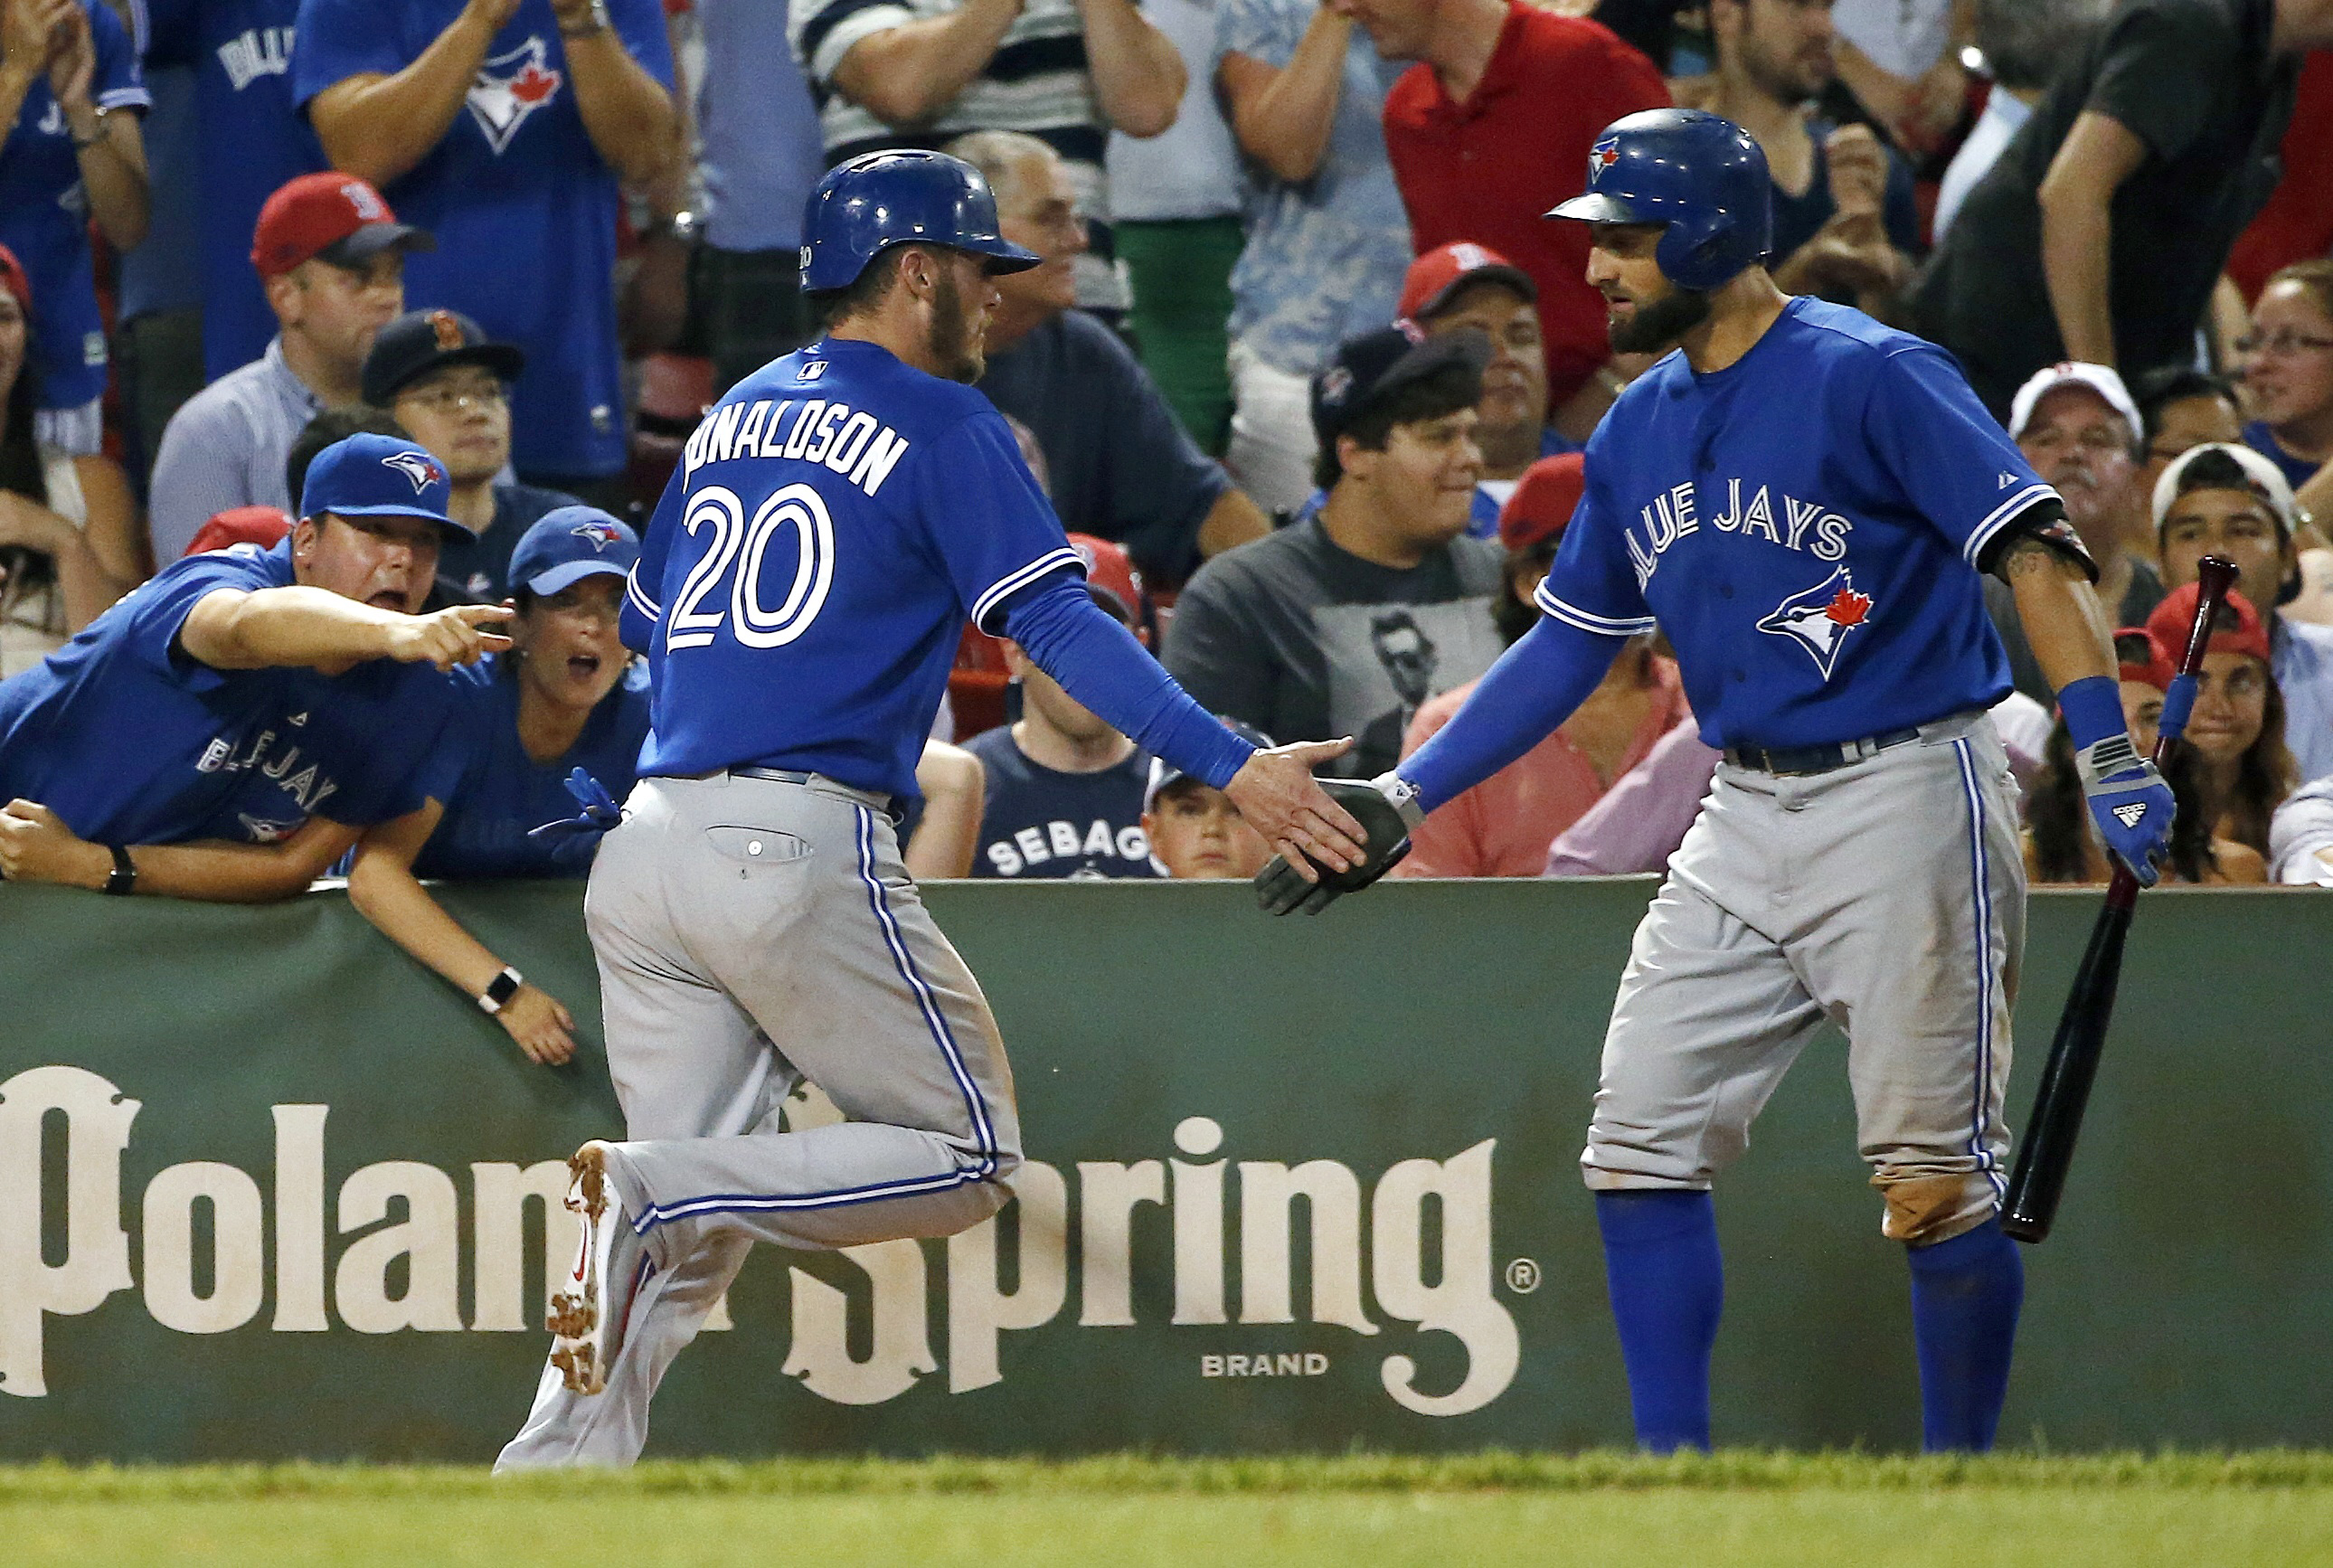 Toronto Blue Jays' Josh Donaldson (20) celebrates after scoring the go-ahead run on a single by Troy Tulowitzki during the 10th inning of a baseball game against the Boston Red Sox in Boston, Tuesday, Sept. 8, 2015. (AP Photo/Michael Dwyer)